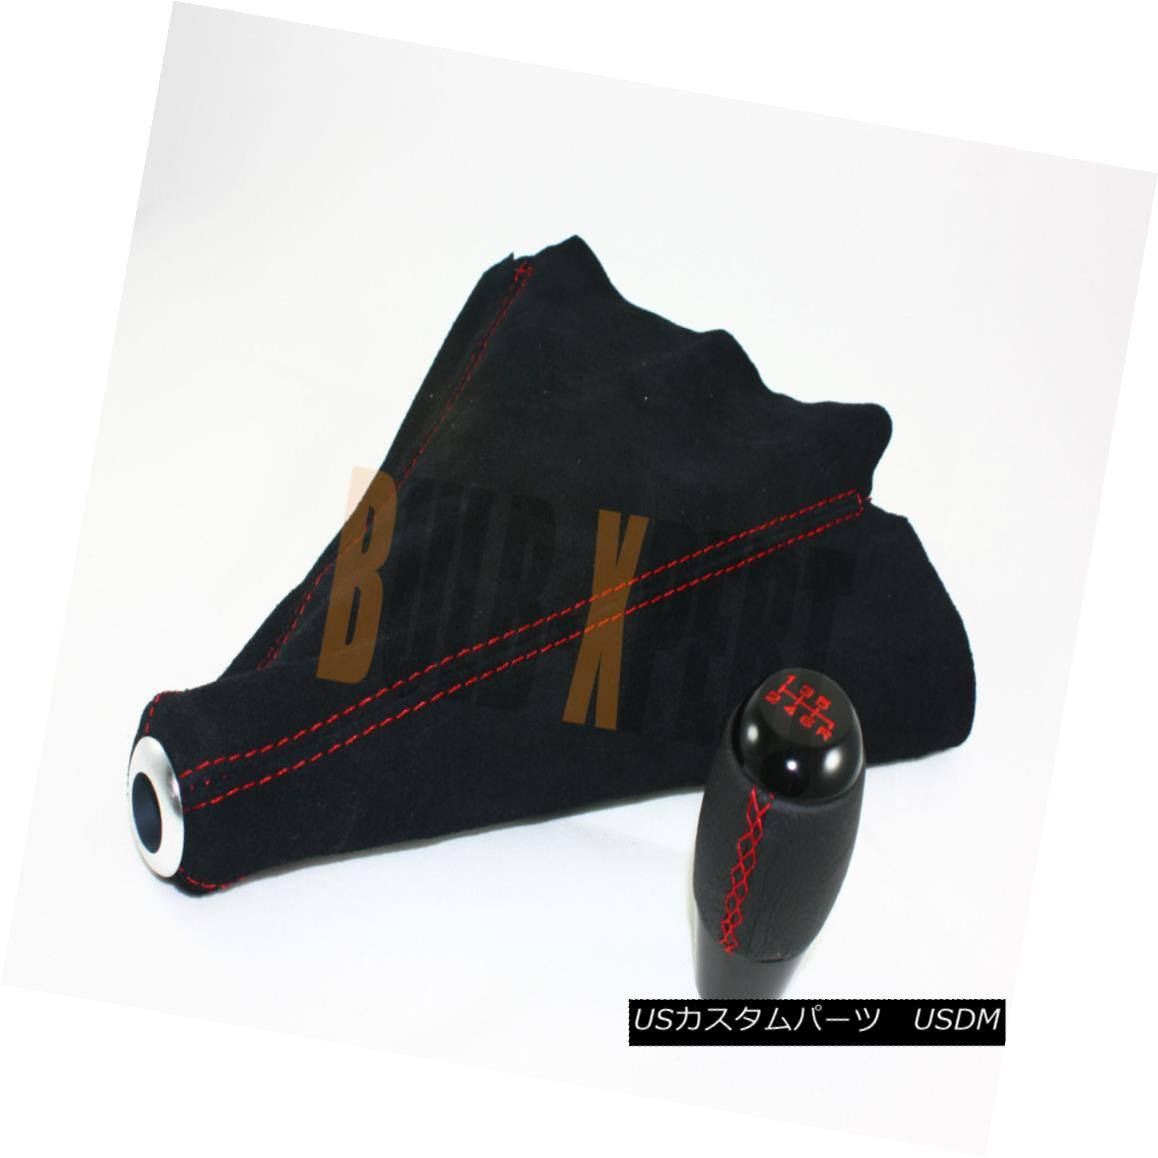 エアロパーツ FIT FOR 350Z 370Z BLK 6 SPEED SHIFTER KNOB + SUEDE SHIFT BOOT W/ RED STITCHING 350Z 370Z BLK 6スピード・シフターノブ+スエード・シフト・ブーツW / RED STITCHING